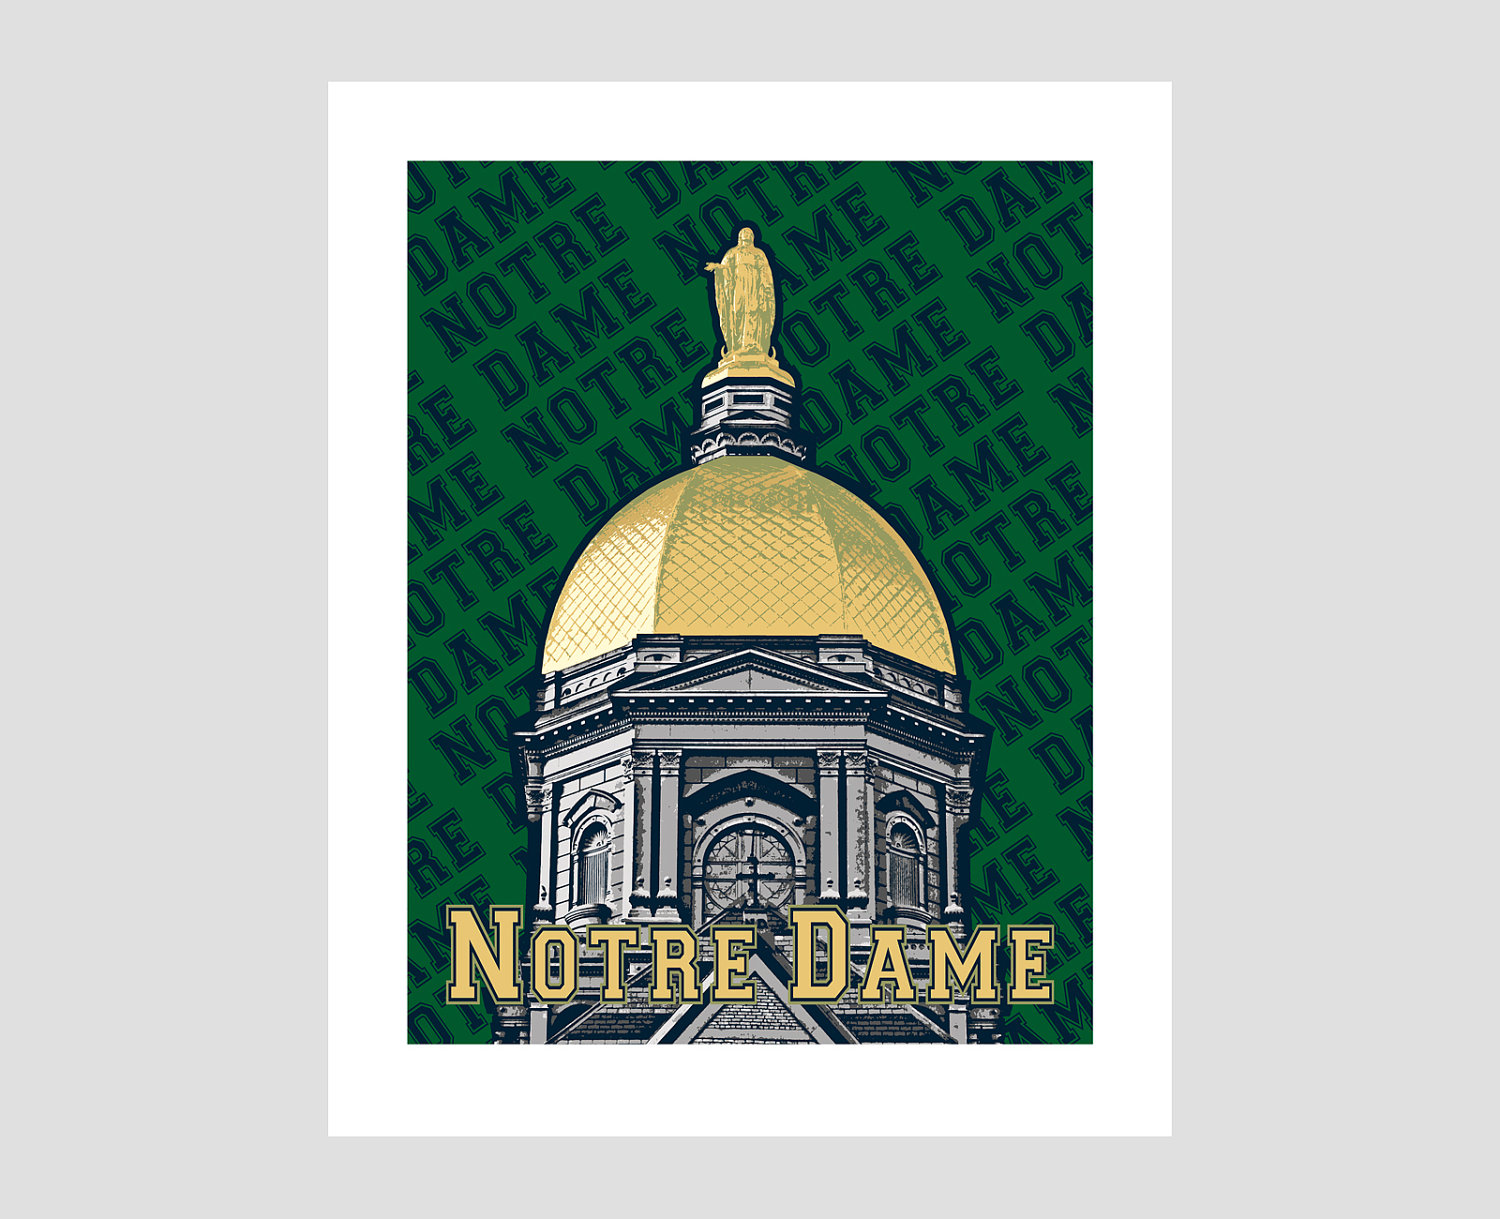 University Of Notre Dame Clip Art.